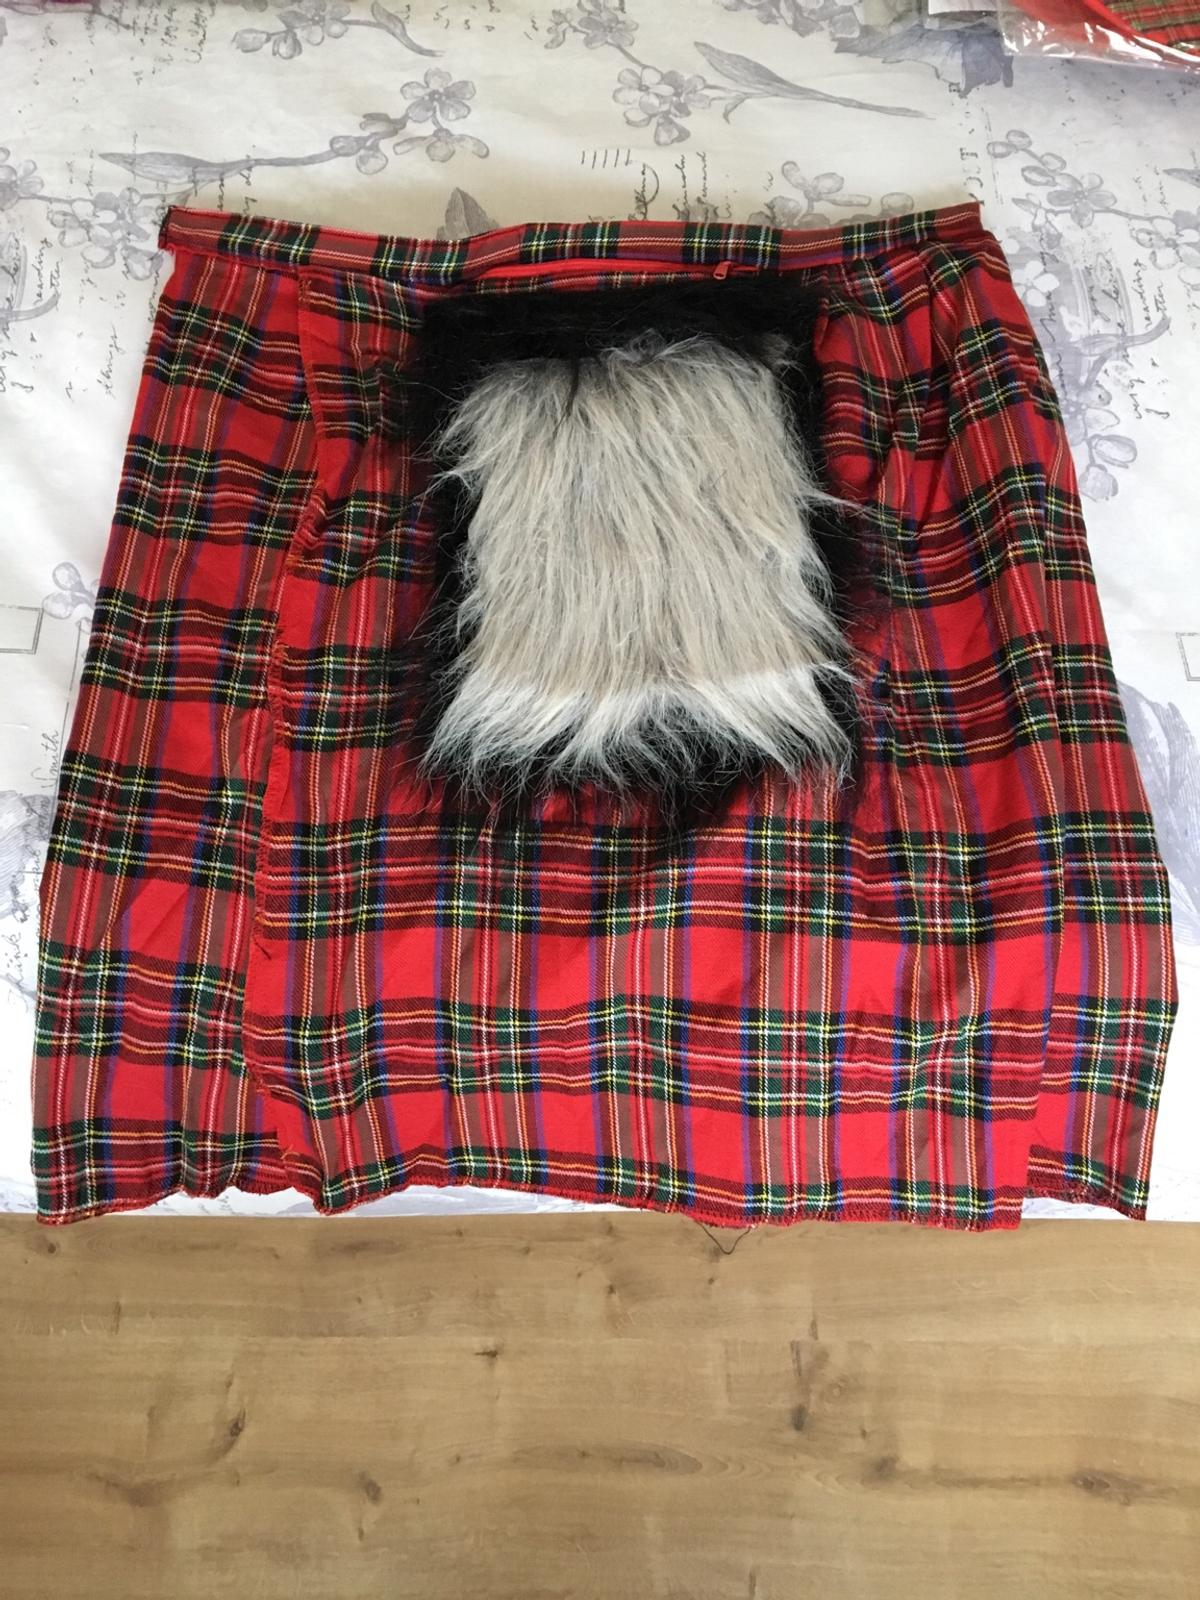 Men's kilt and sporran purchased for a BN party which has now been cancelled. One size, Velcro fastening. 3 available.  Note - this is a kilt & sporran only  Local collection in Exmouth or post with additional costs below.  £10 each or all 3 for £25